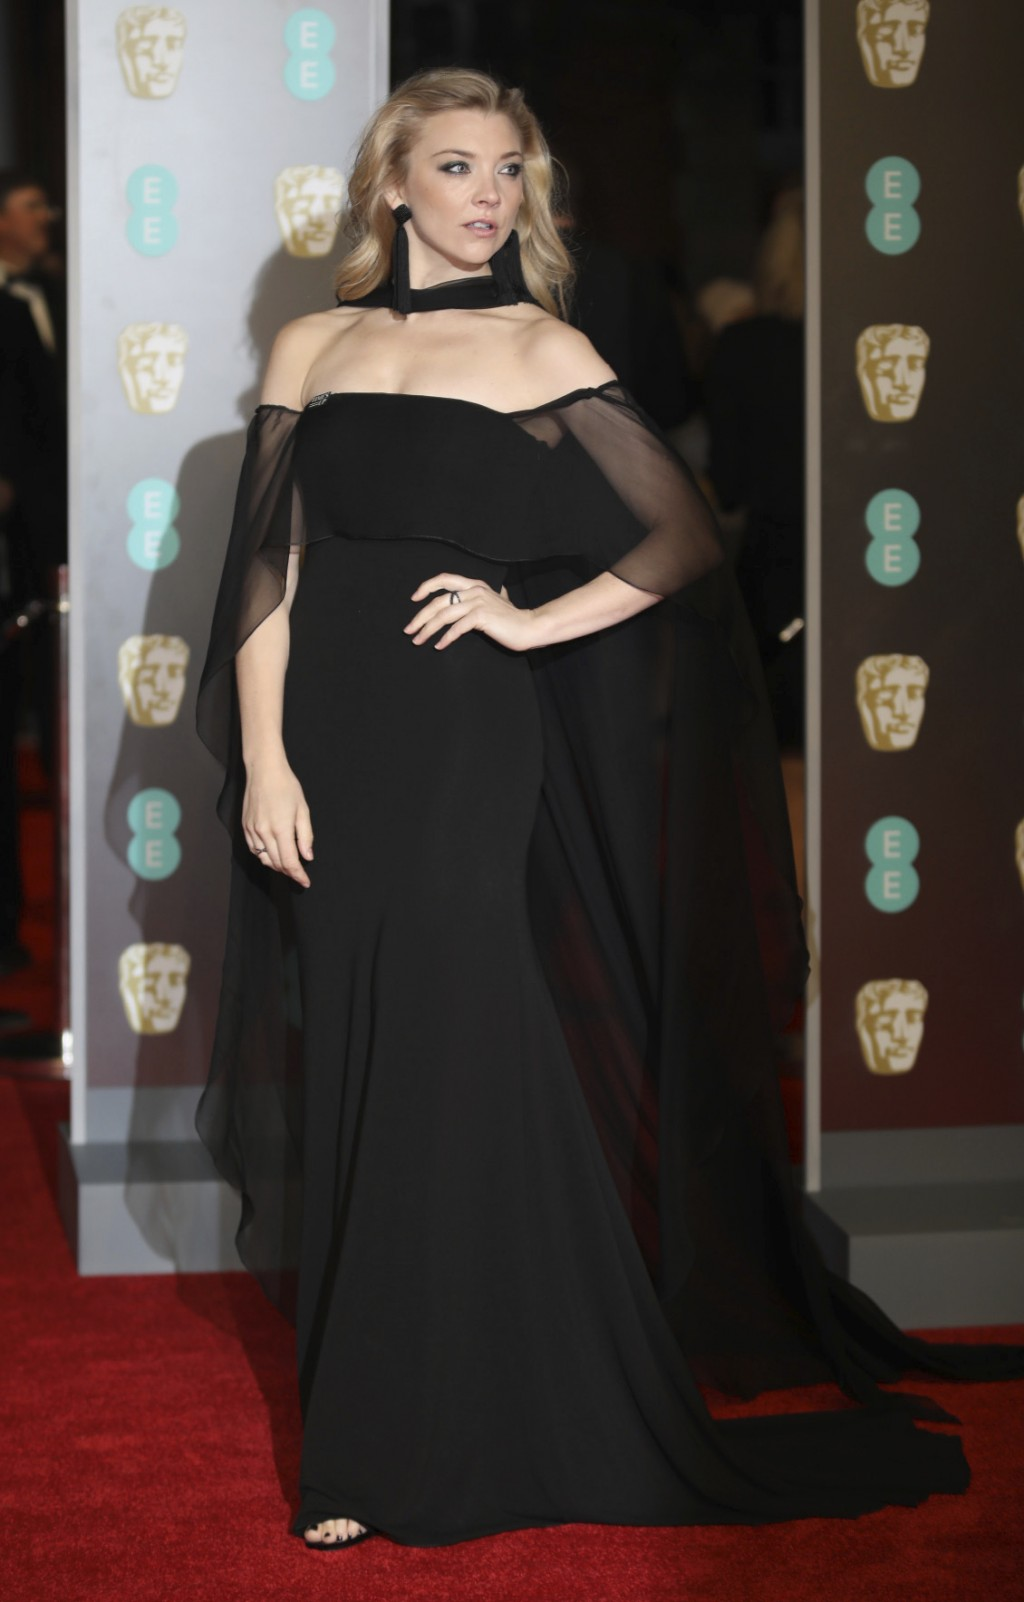 Actress Natalie Dormer poses for photographers upon arrival at the BAFTA Awards 2018 in London, Sunday, Feb. 18, 2018. (Photo by Vianney Le Caer/Invis...